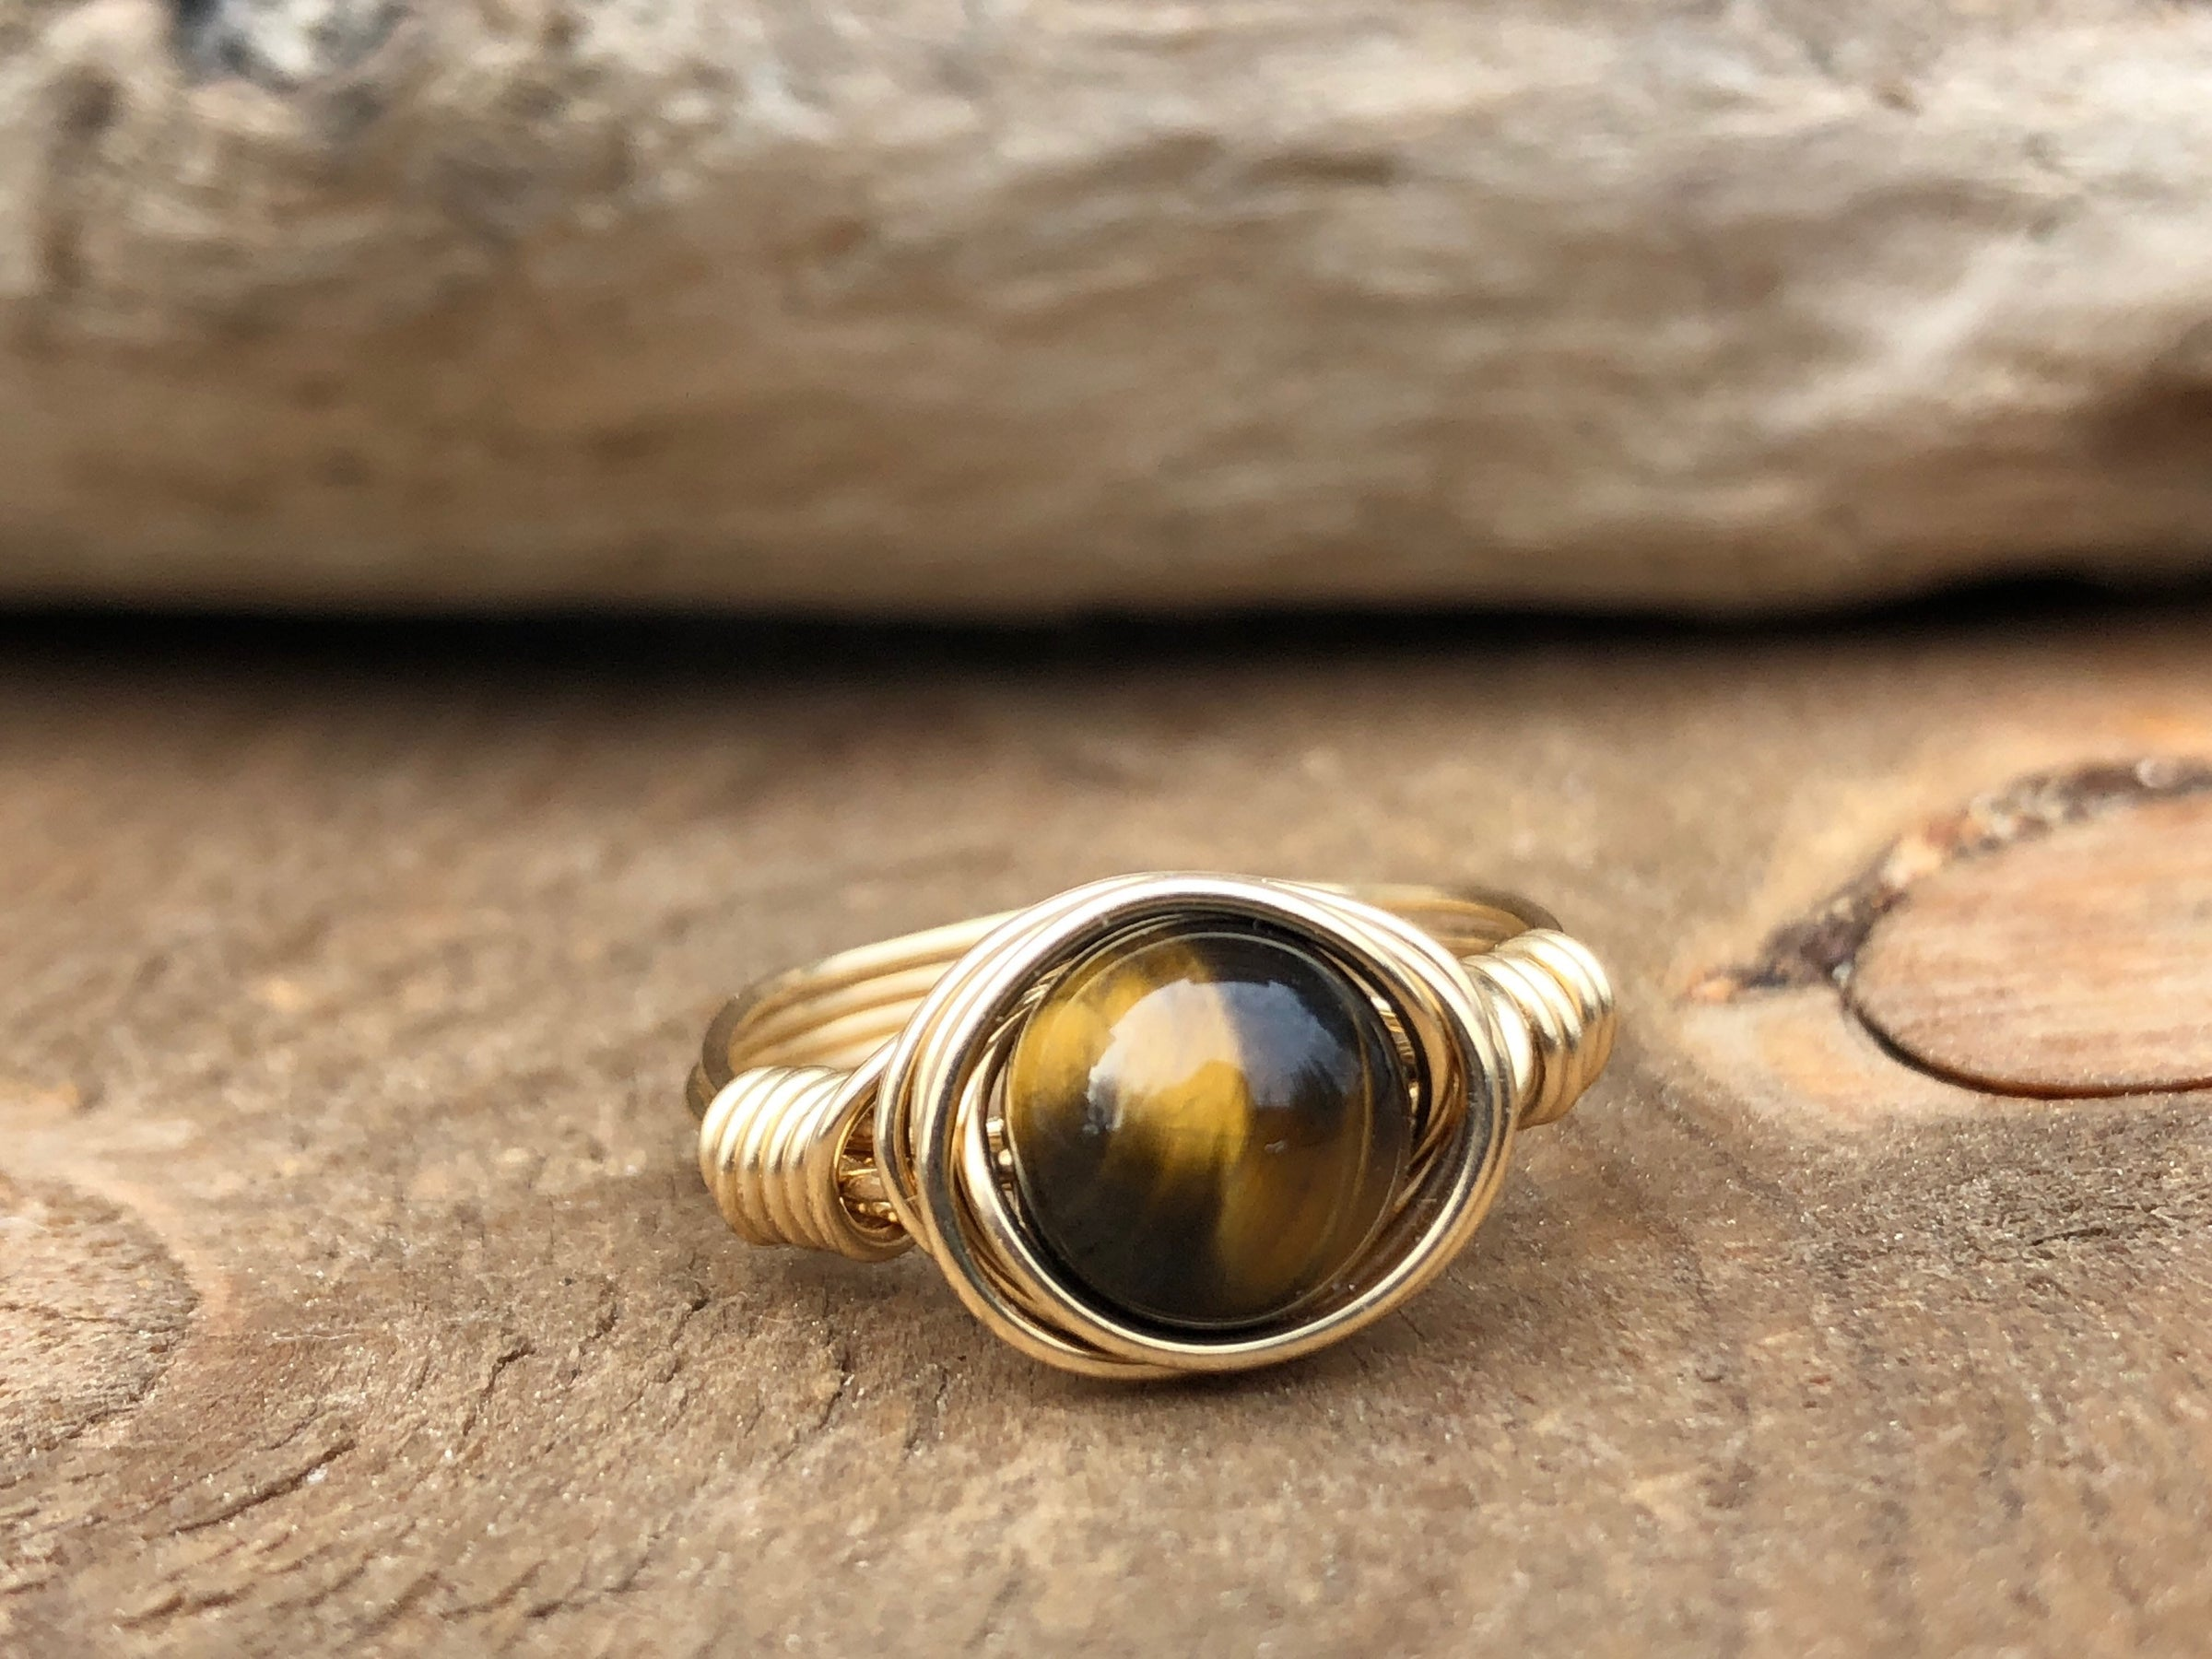 6mm Crystal wrapped rings Tigers eye /& Opal